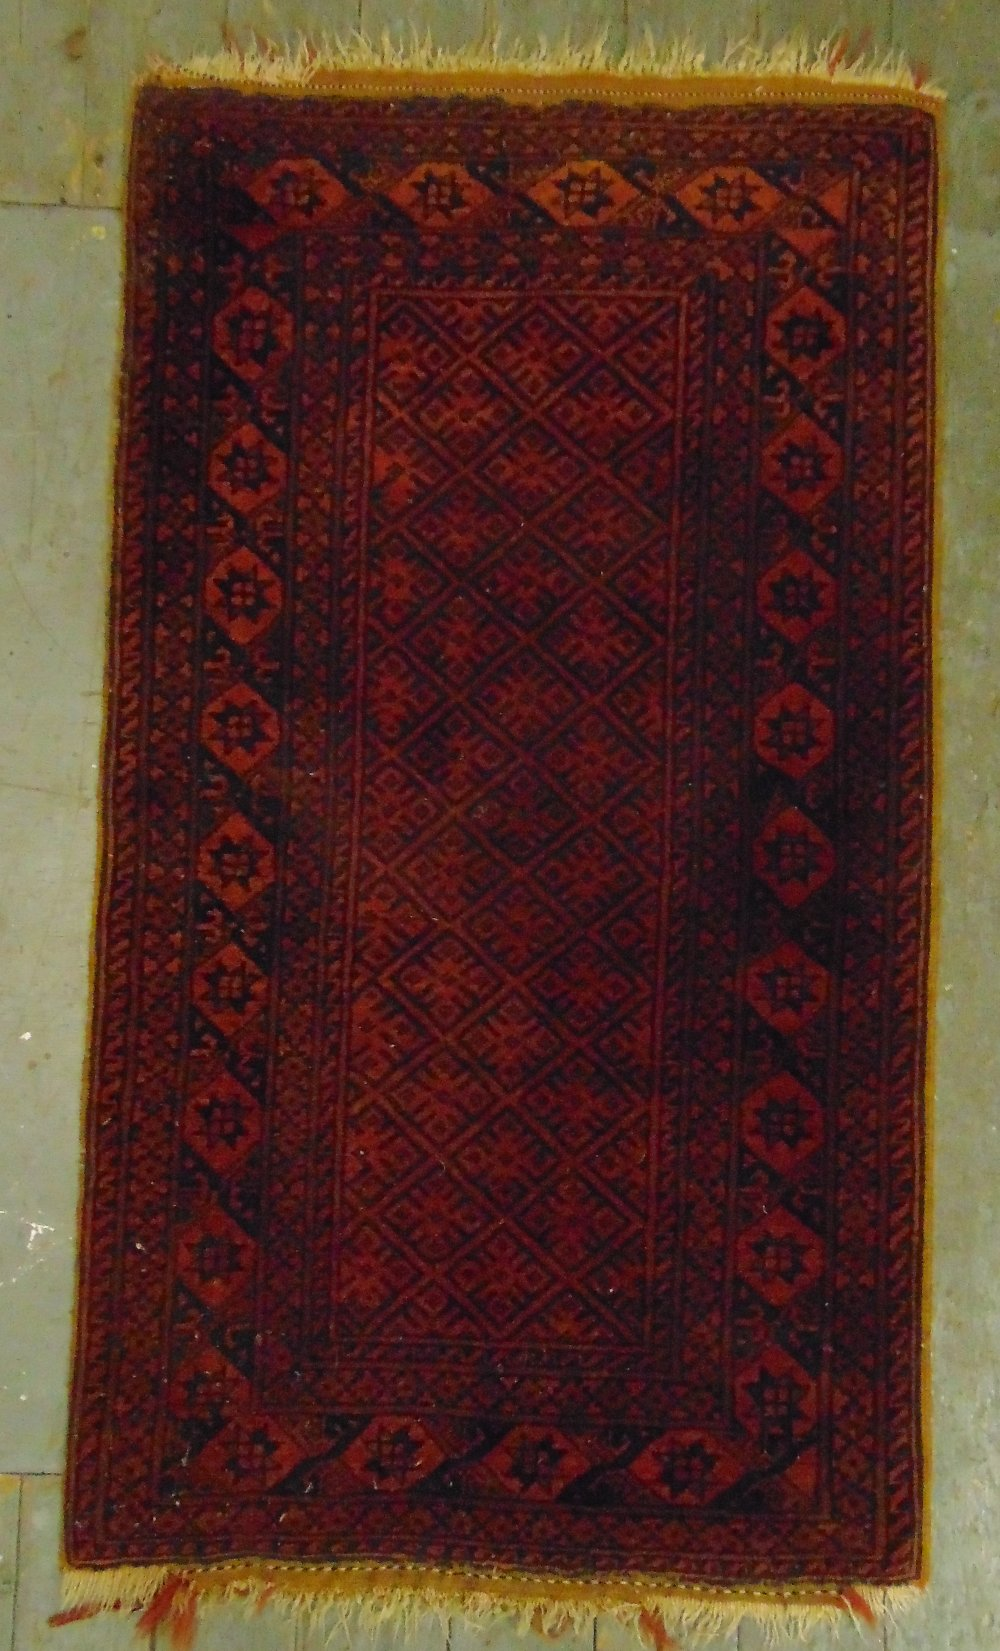 Lot 22 - Two Persian rugs, red ground with repeating motif patterns and borders A.140 x 80cm B.144 x 106cm